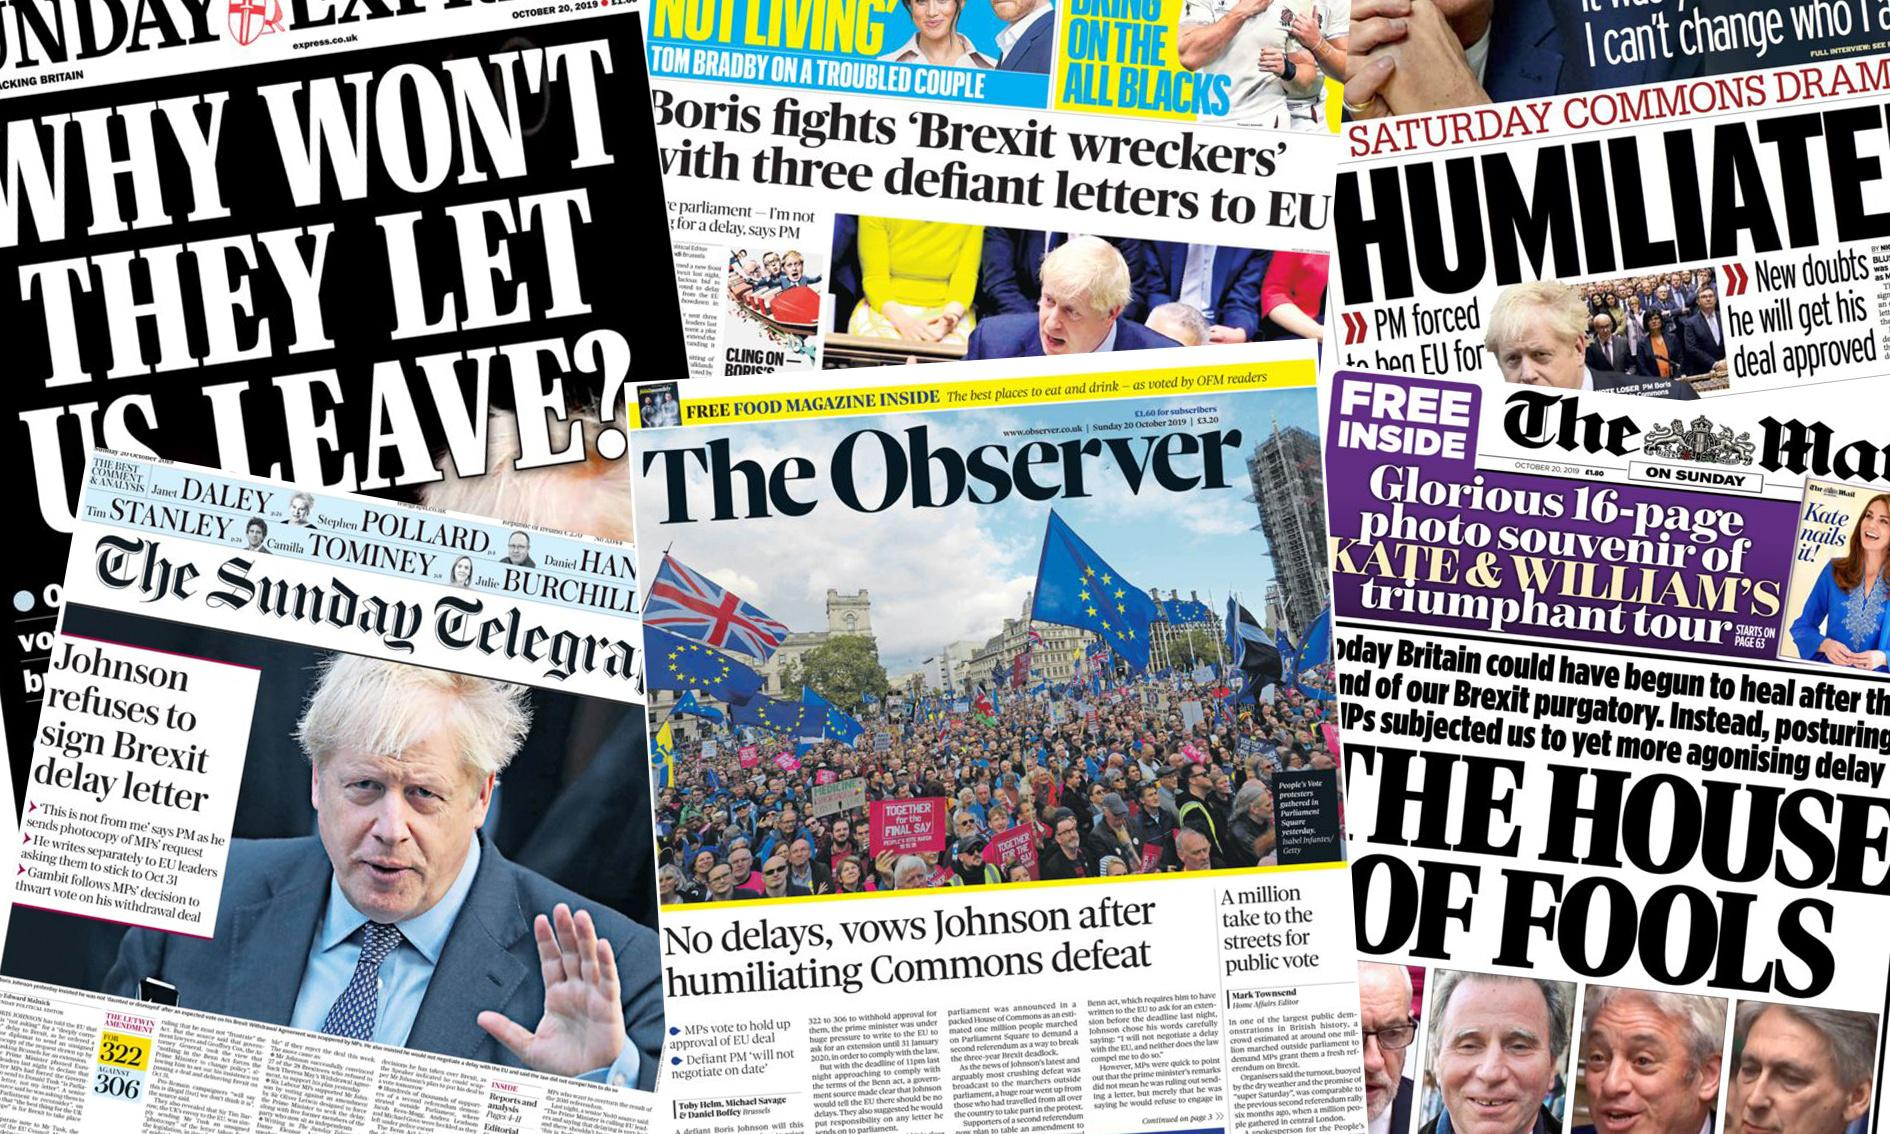 'House of fools': how the papers covered Johnson's latest Brexit defeat